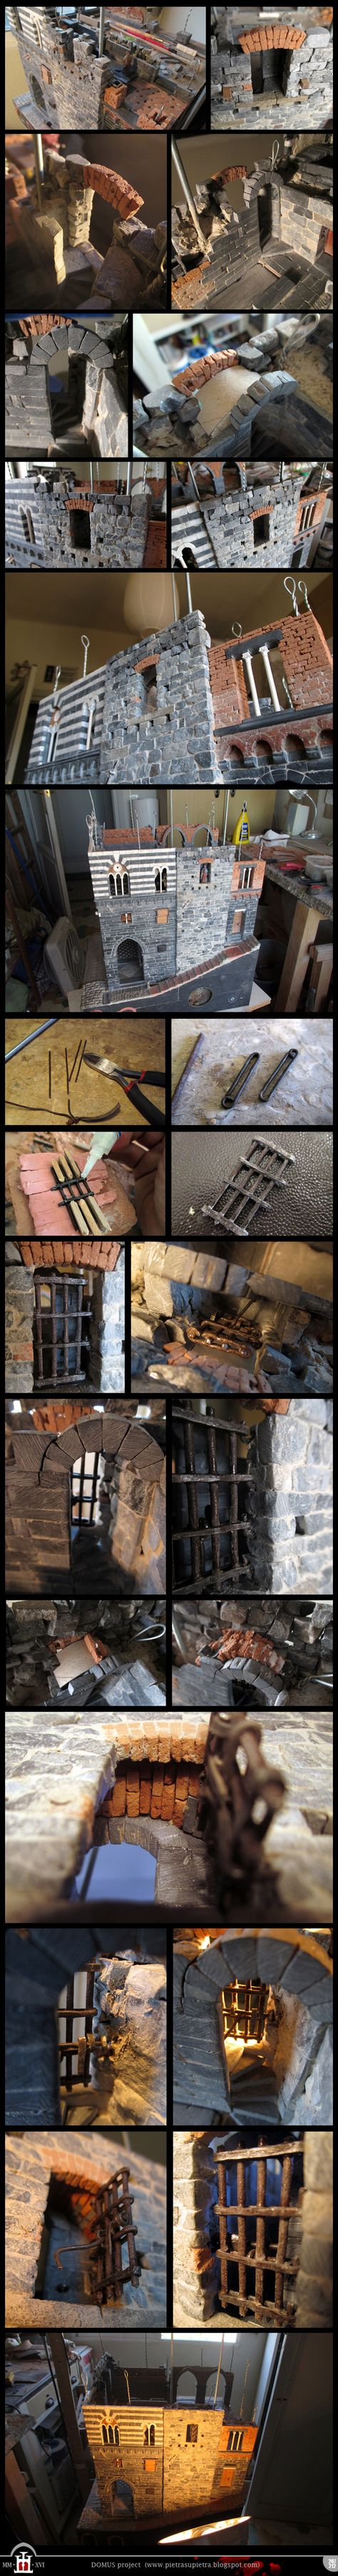 Domus project 212: Tower gate by Wernerio on DeviantArt